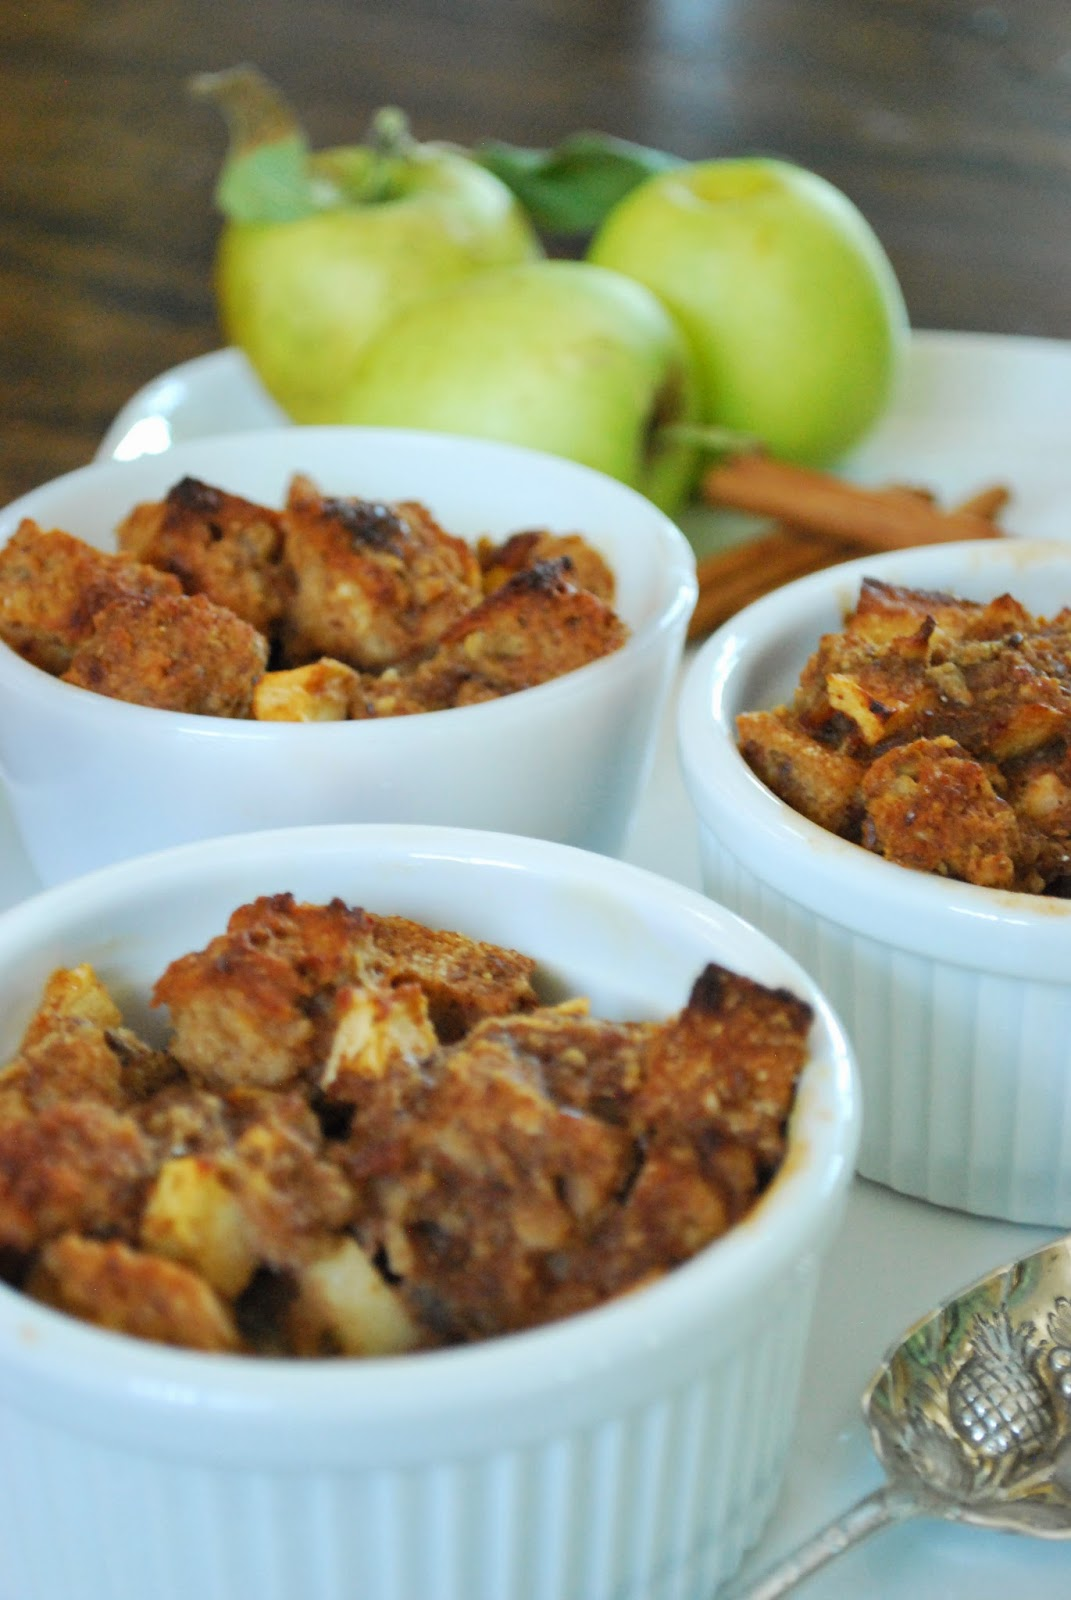 This Make-Ahead Breakfast Bread Pudding is naturally sweetened and packed with fiber for a healthy start to your day.